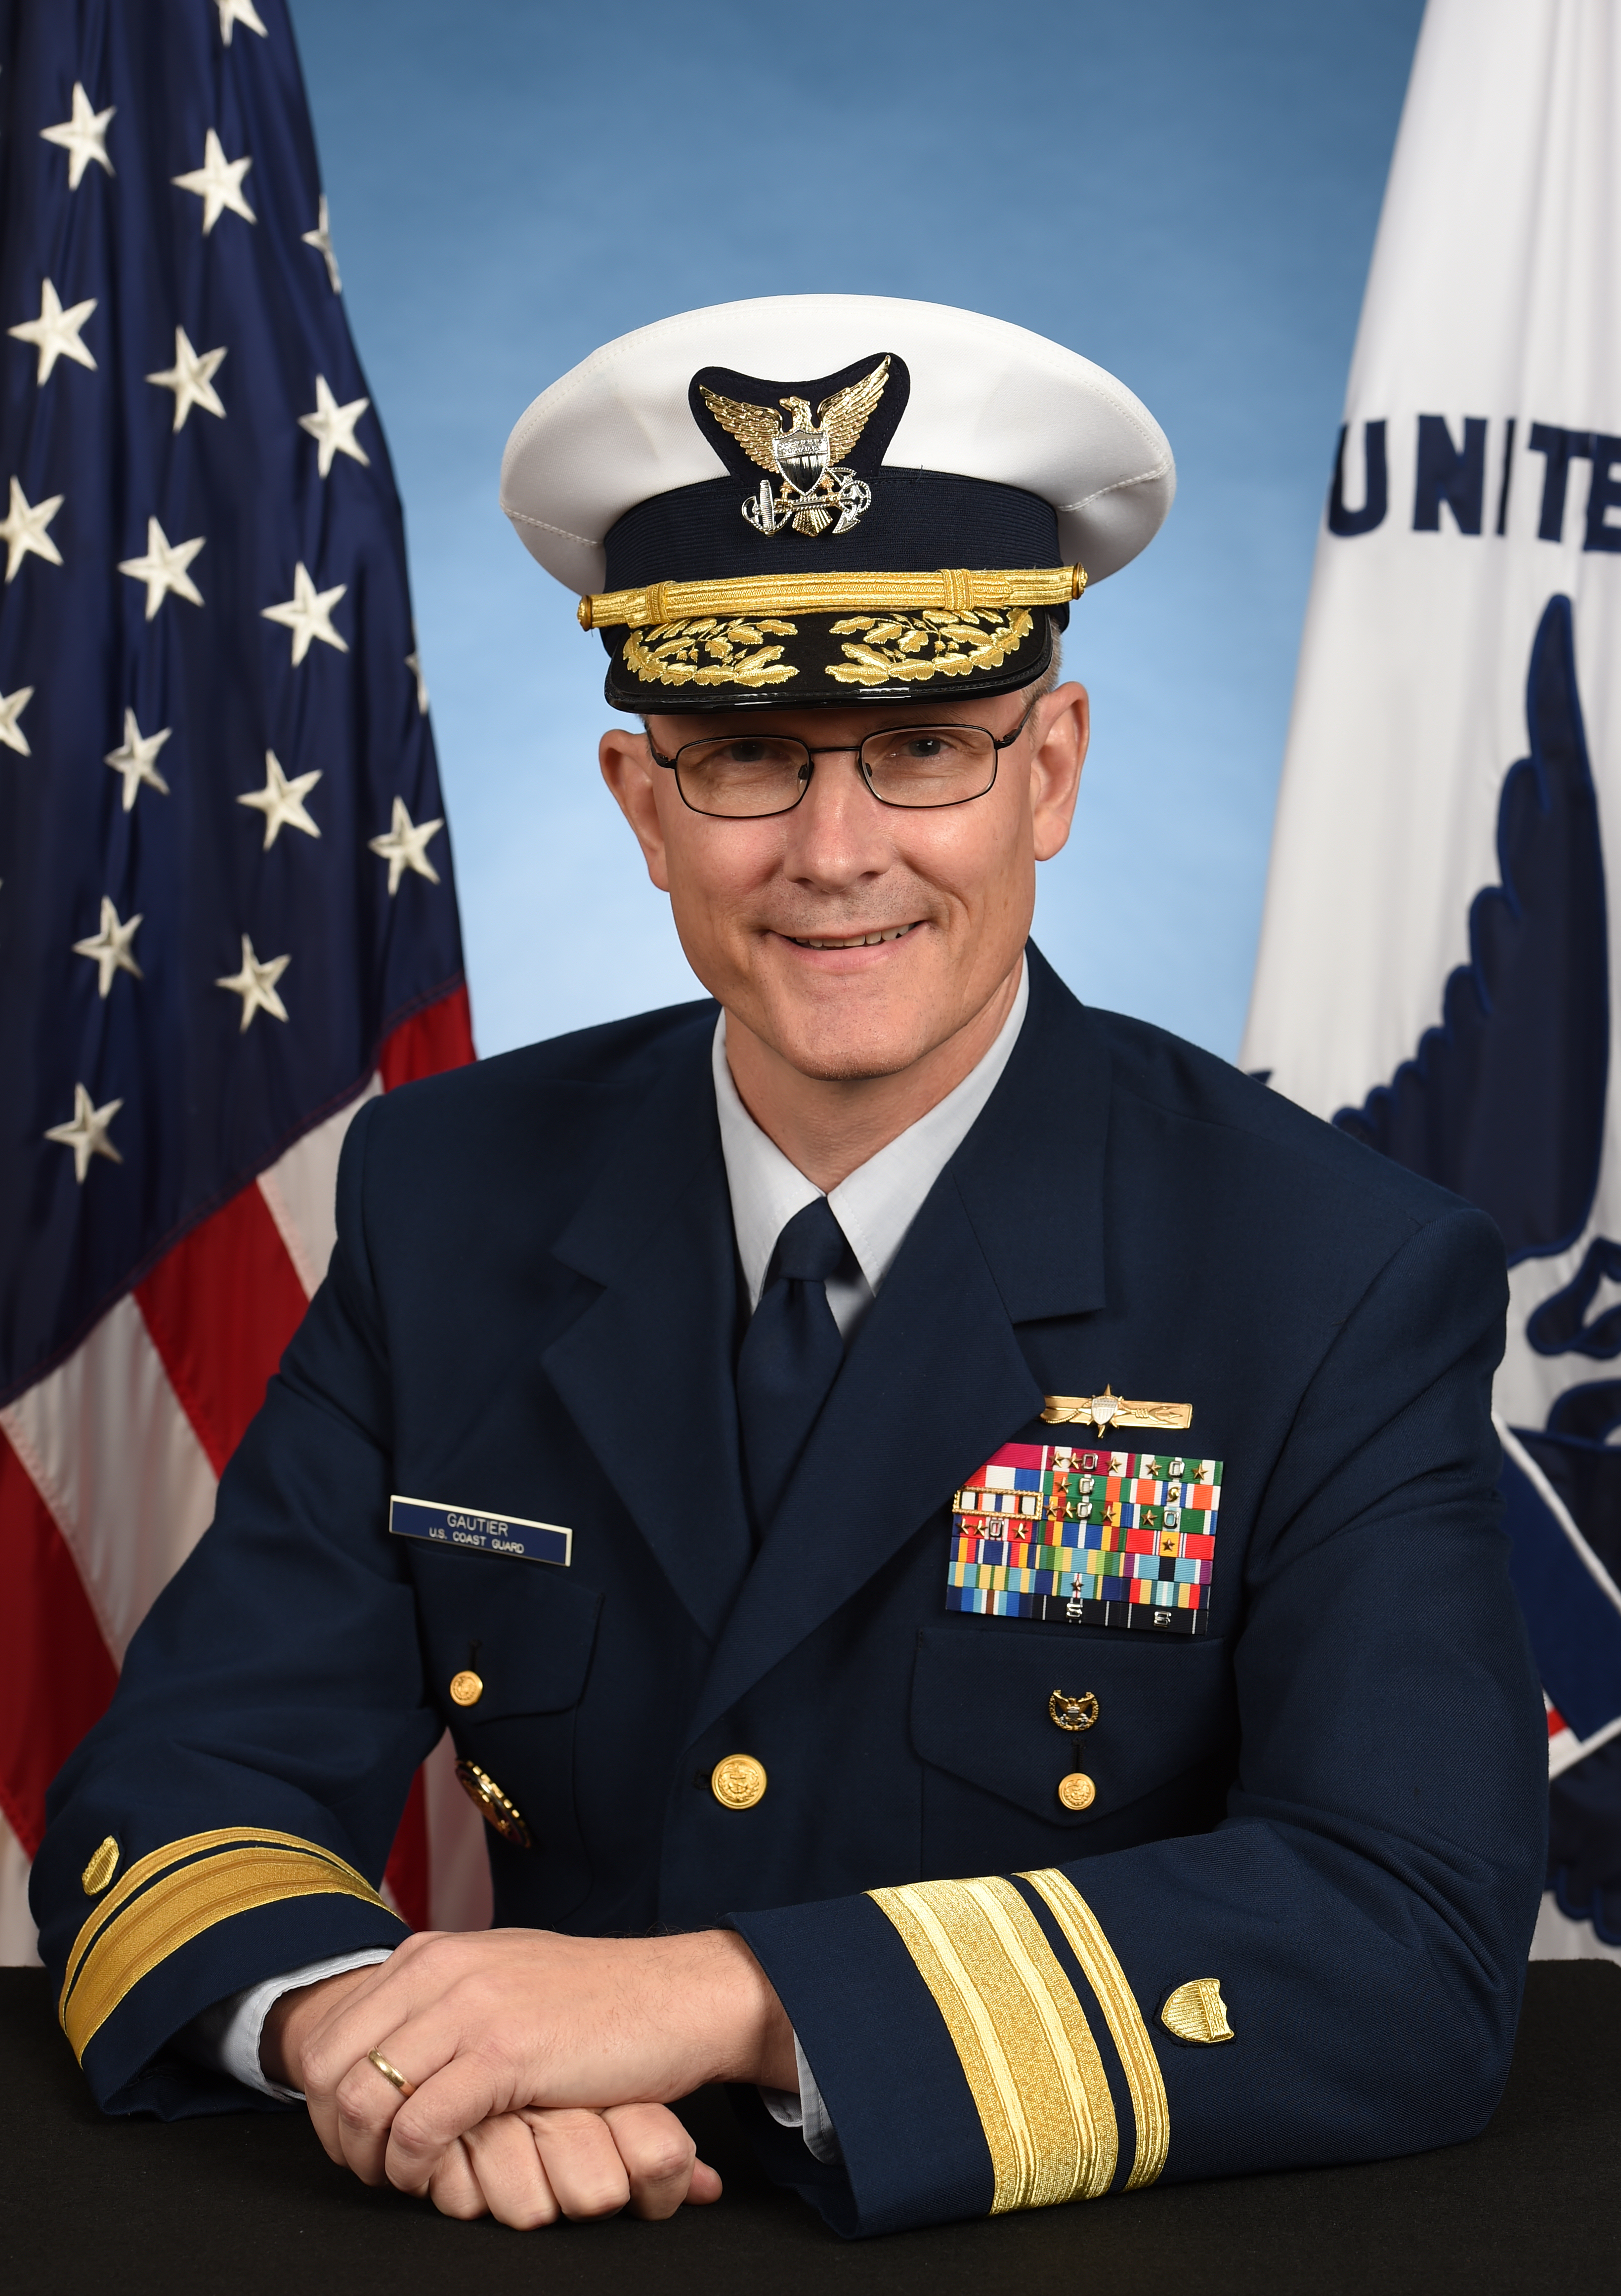 Photo of Rear Admiral Peter W. Gautier